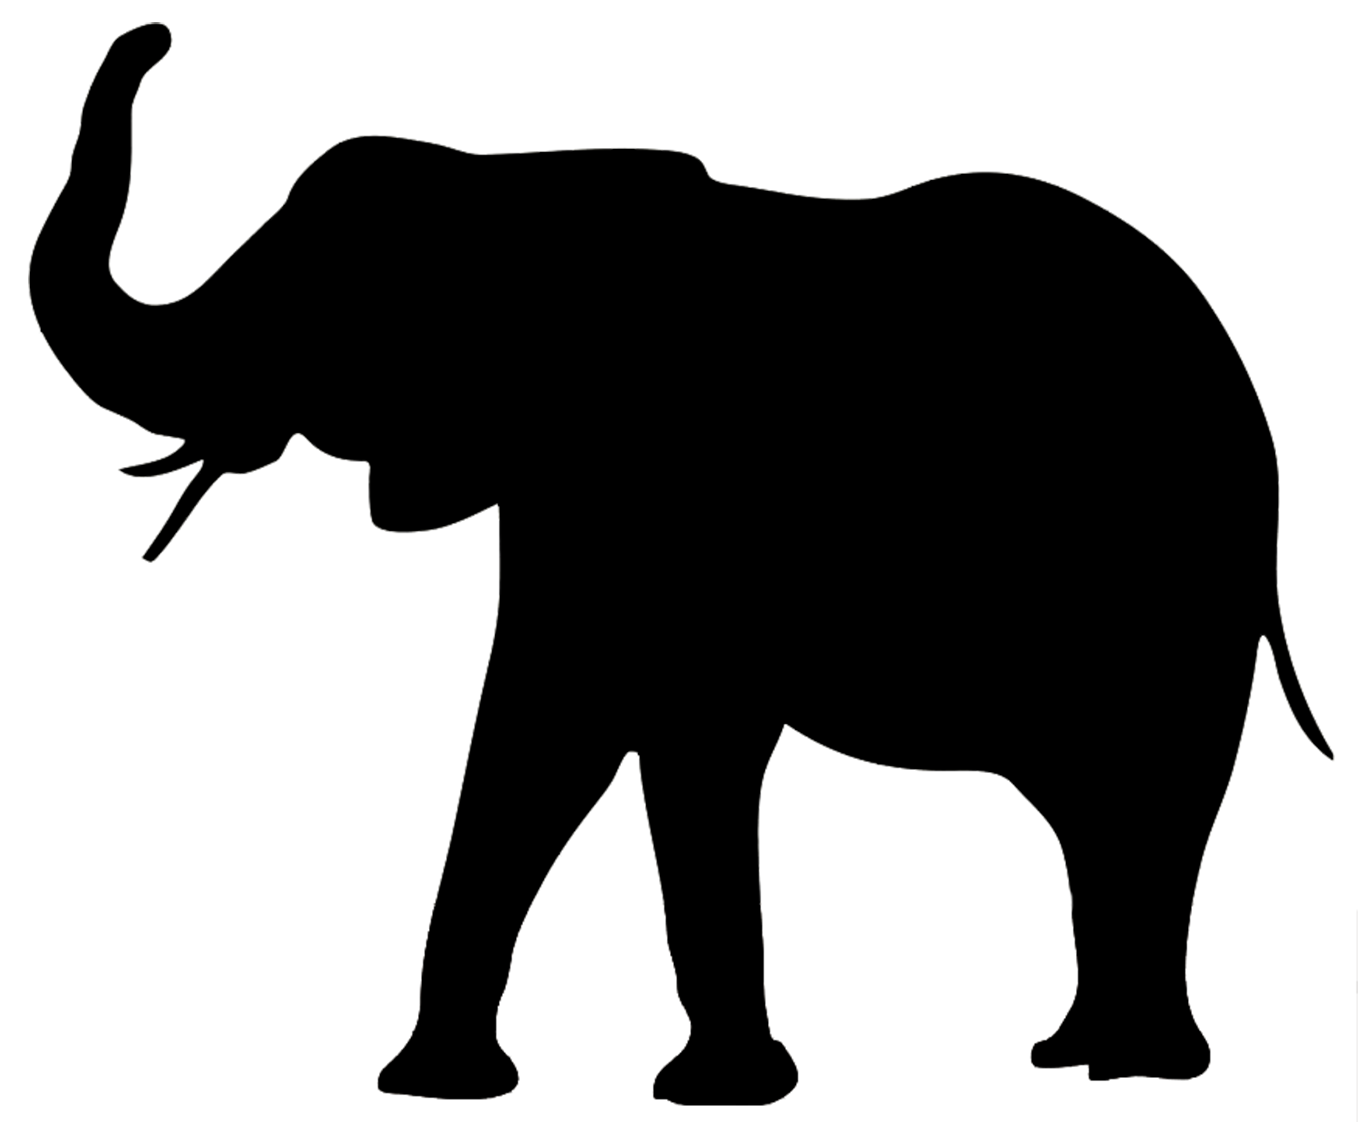 Elephant silhouette png. Art at getdrawings com